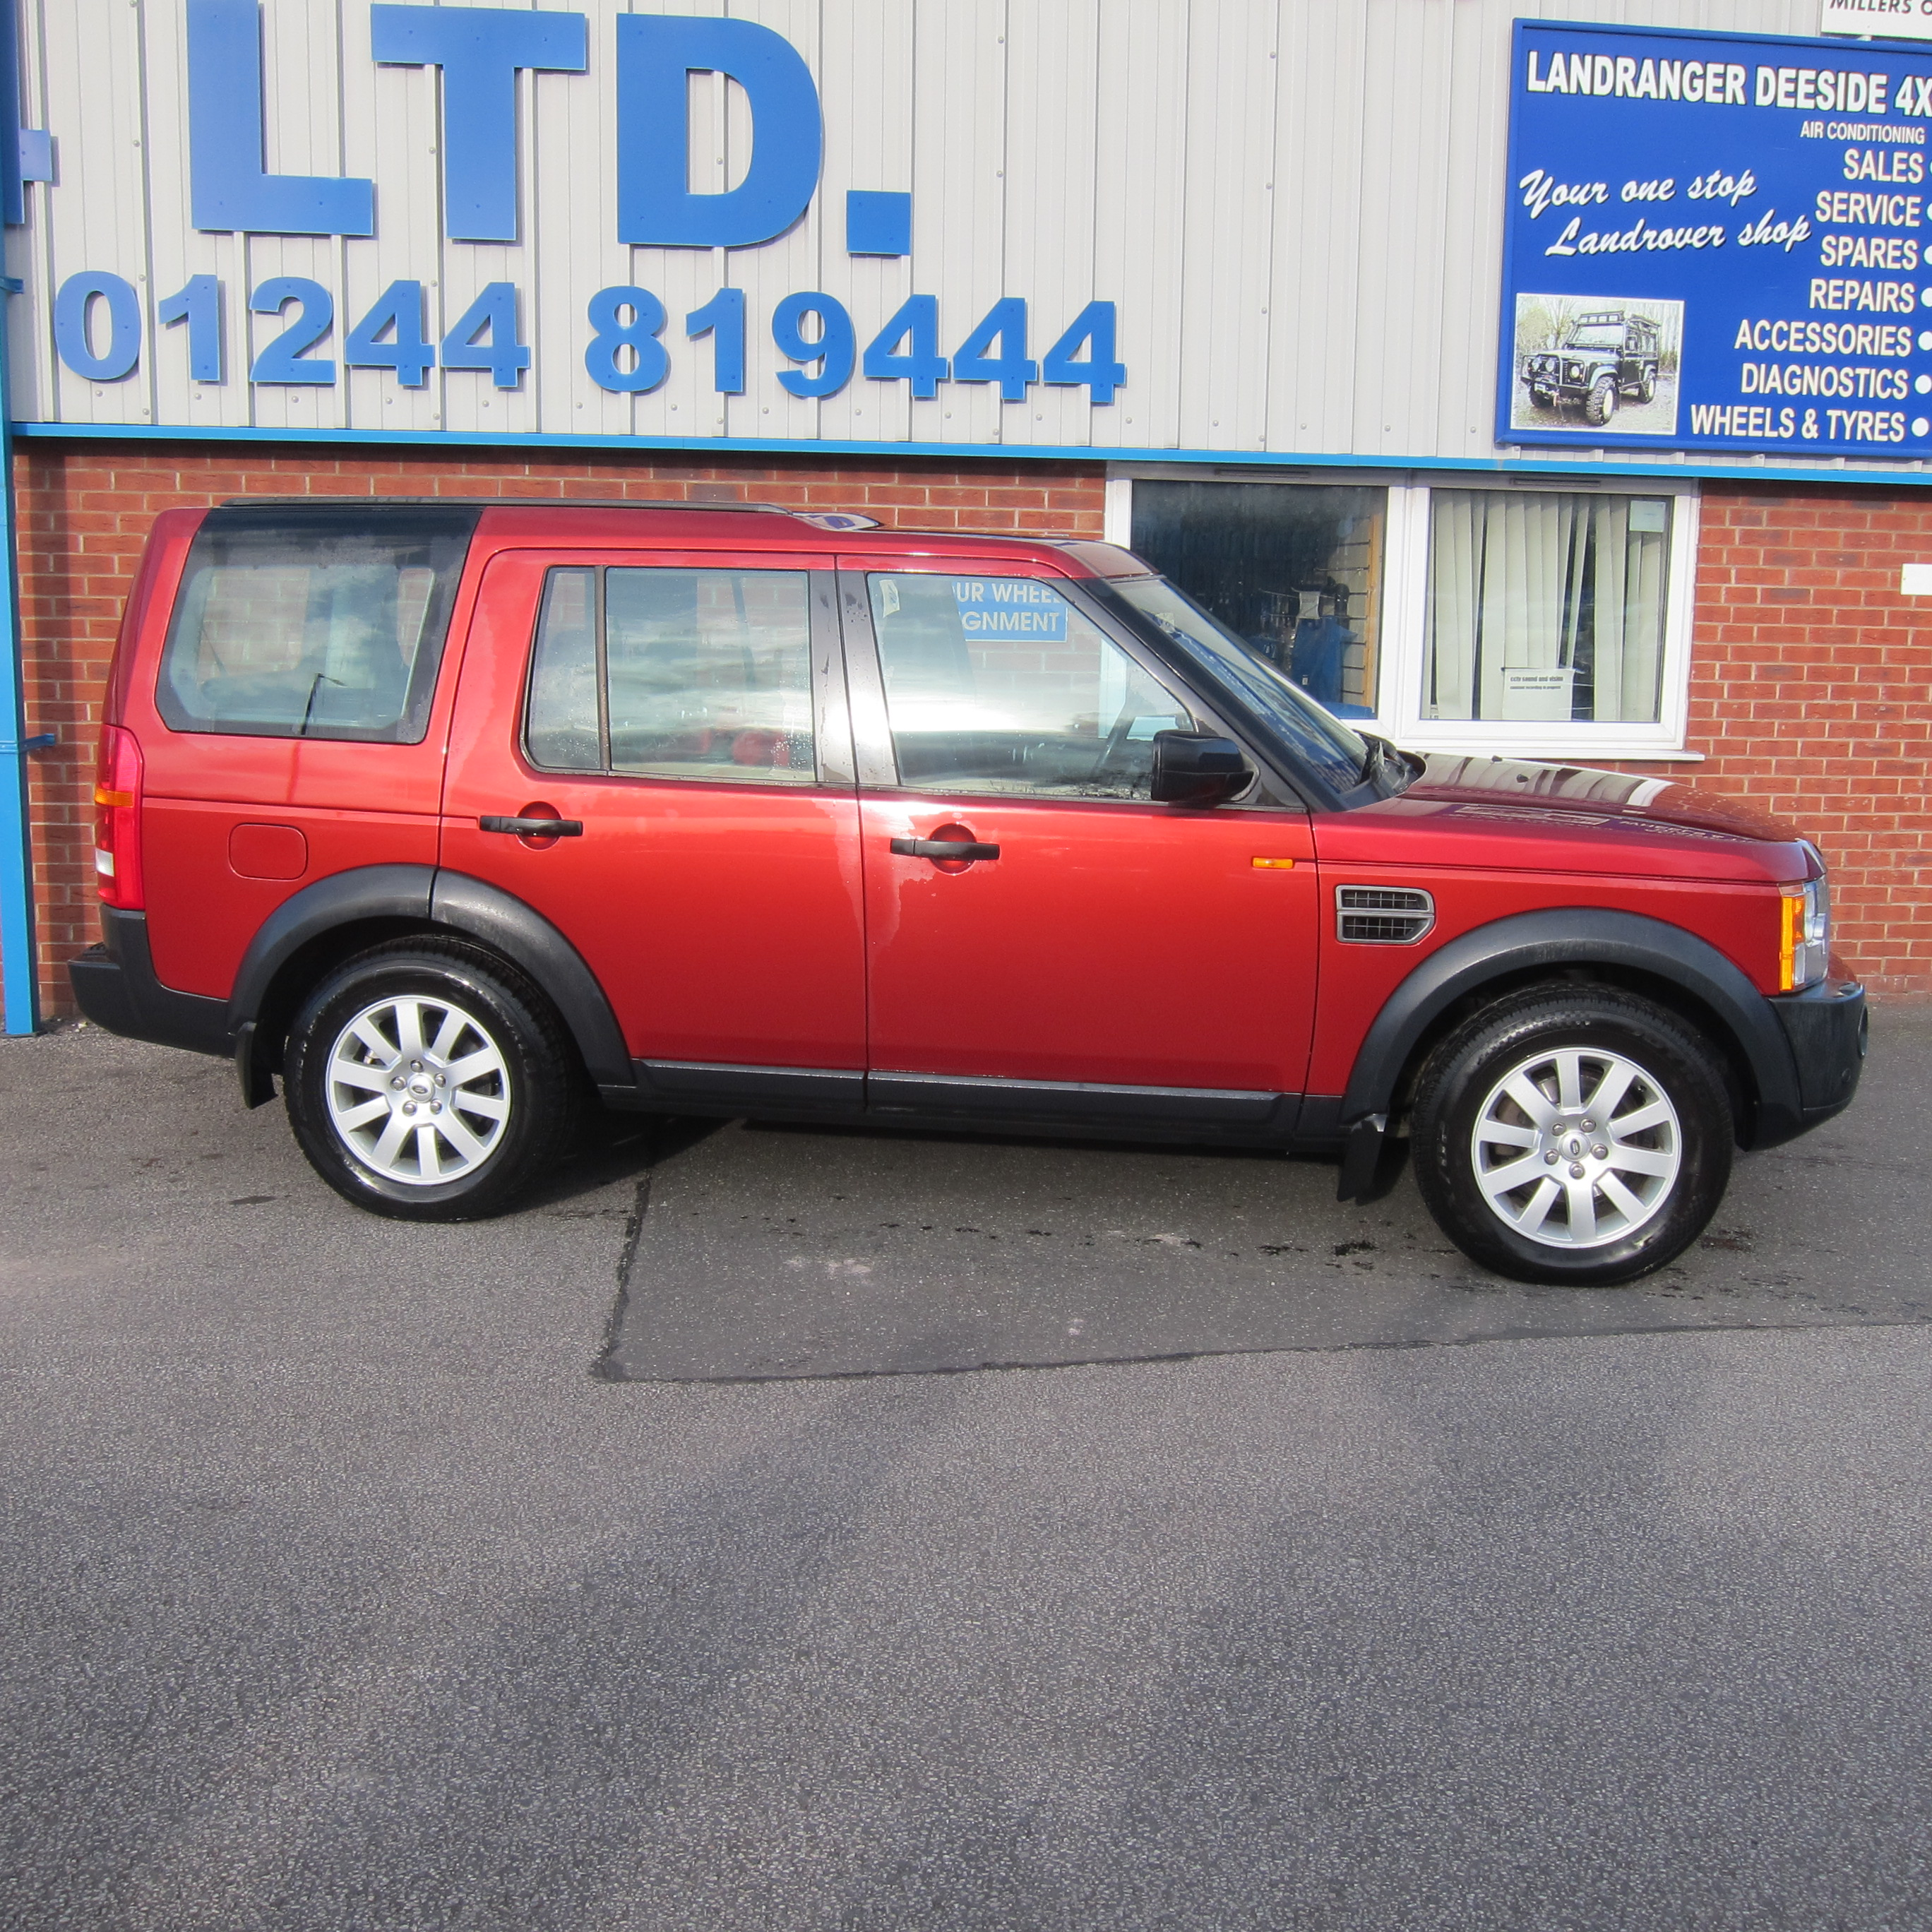 LAND ROVER DISCOVERY 3 2.7 TDV6 SE MANUAL 7 SEATER